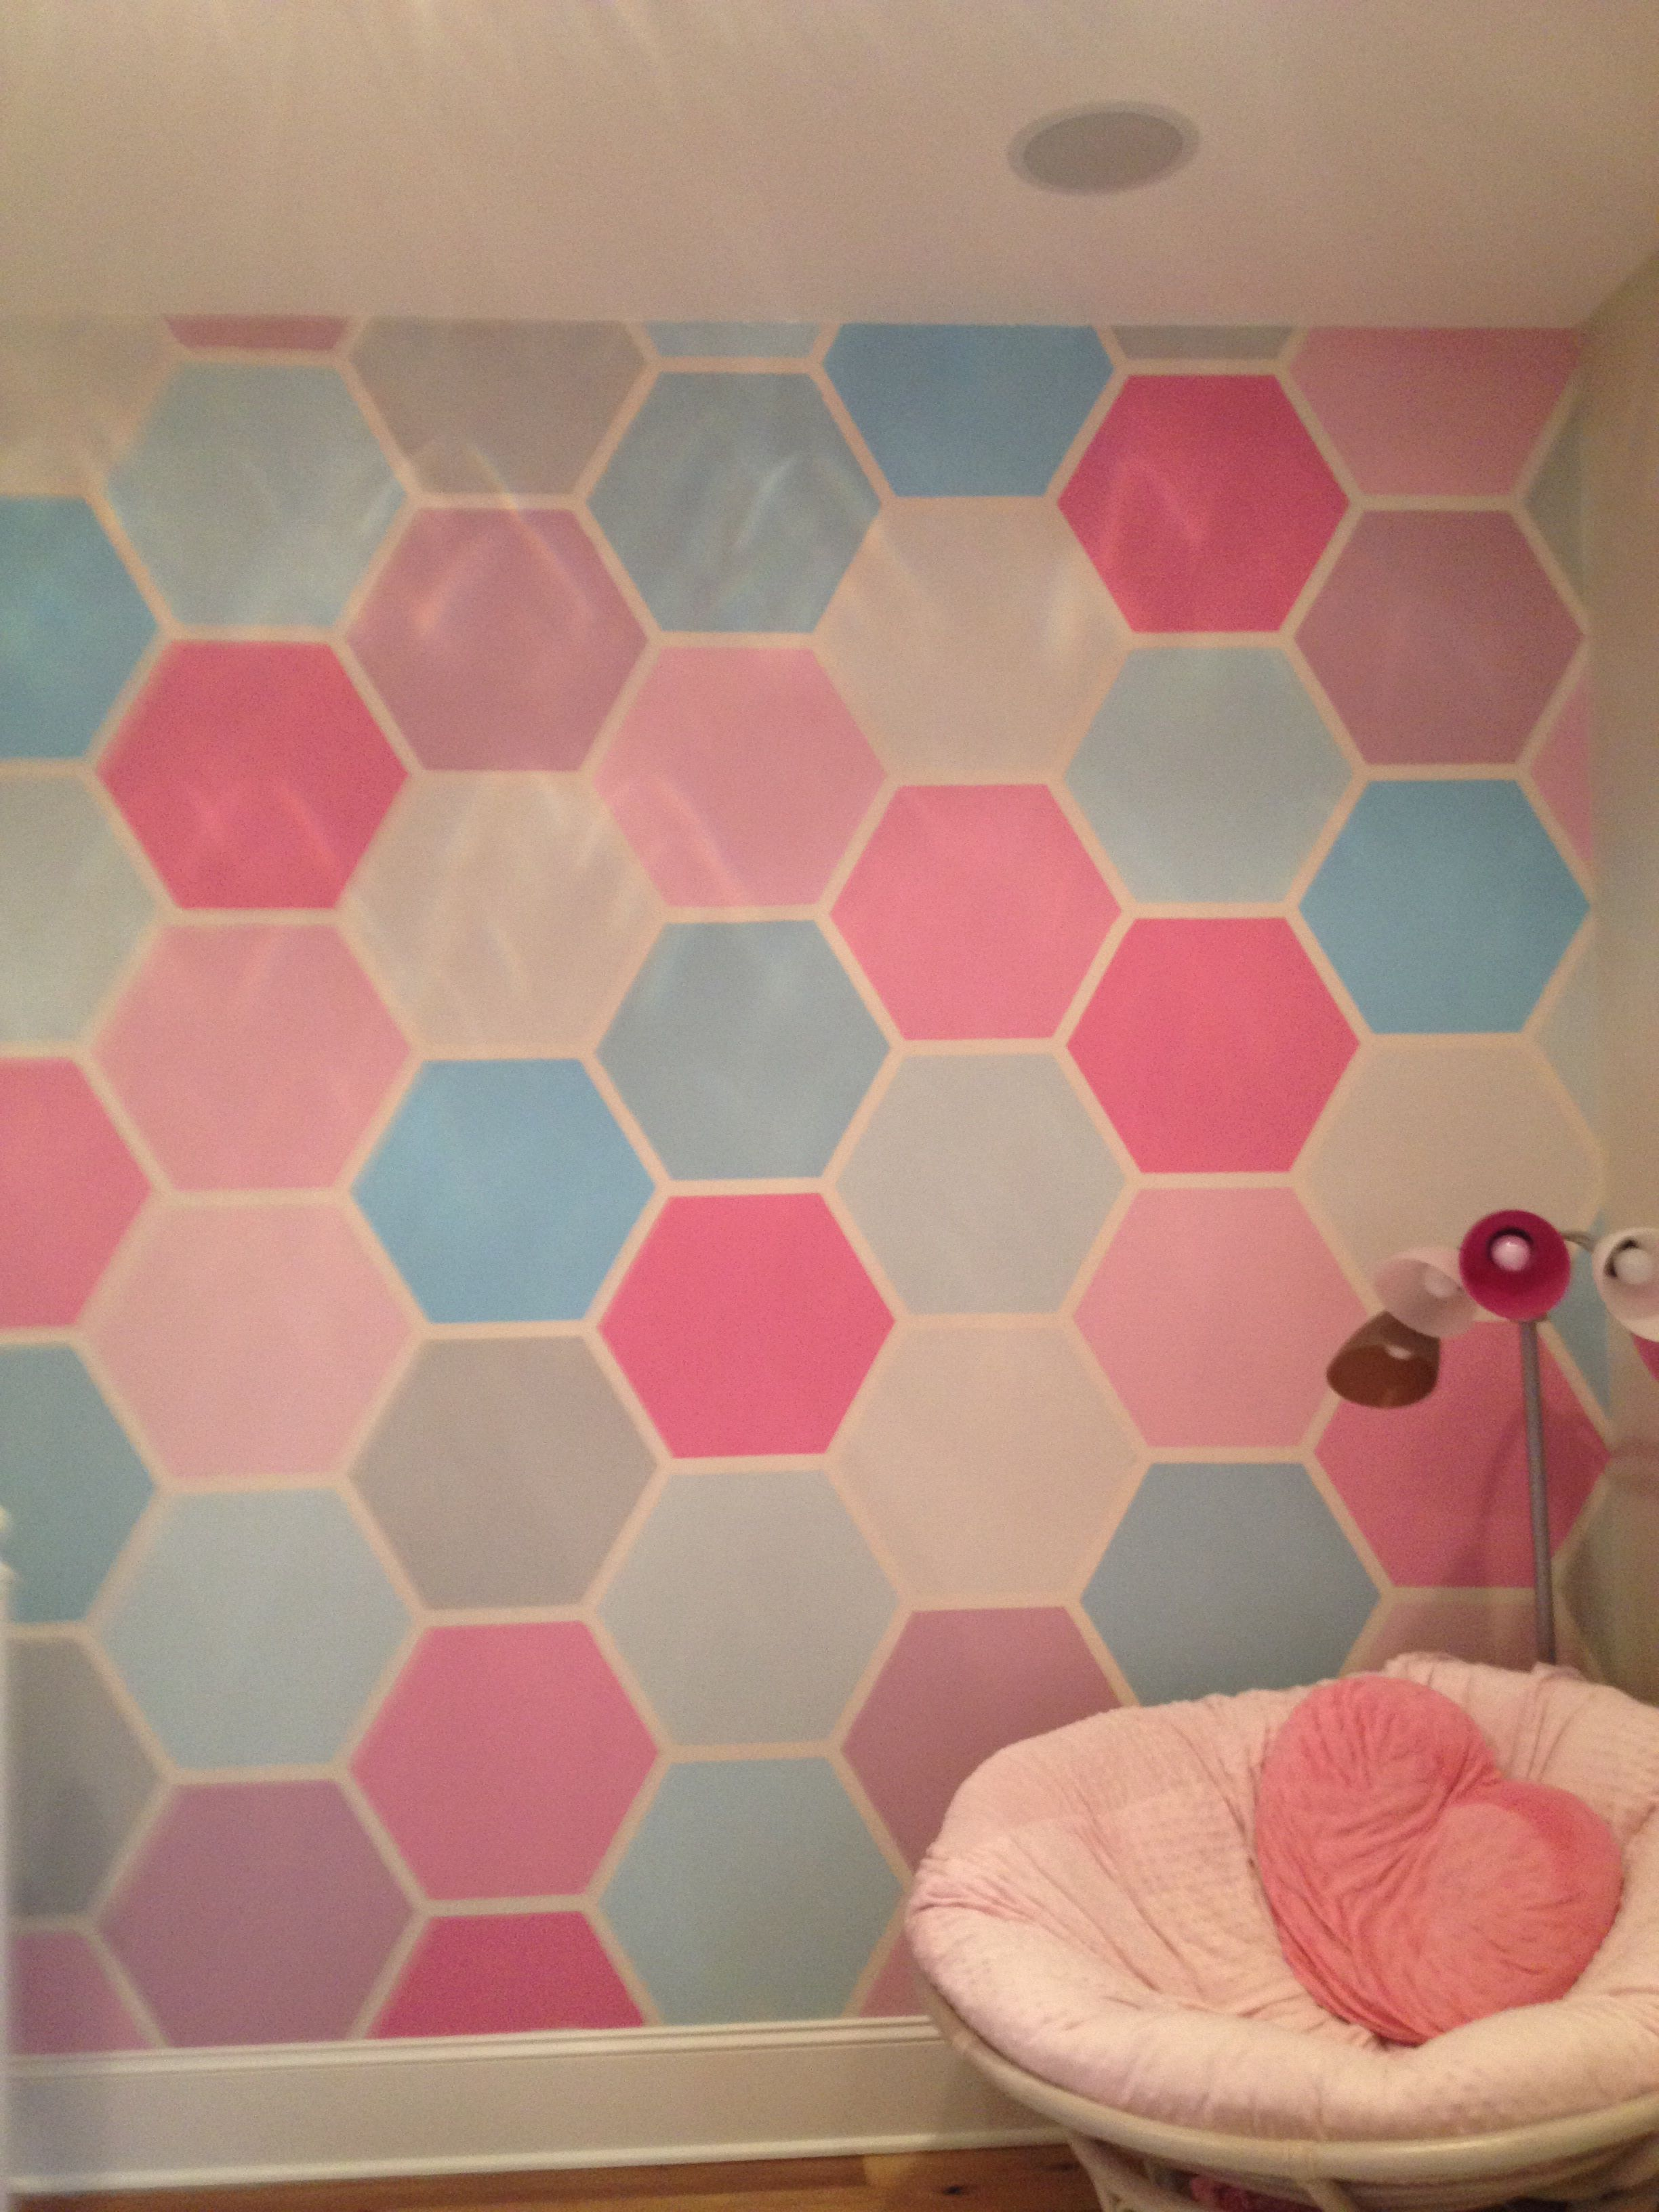 Instructions You Must Have 1 Inch Thick Painters Tape A Hexagon Stencil And Paint Place The Stencil On The Room Paint Living Room Paint Wall Paint Designs